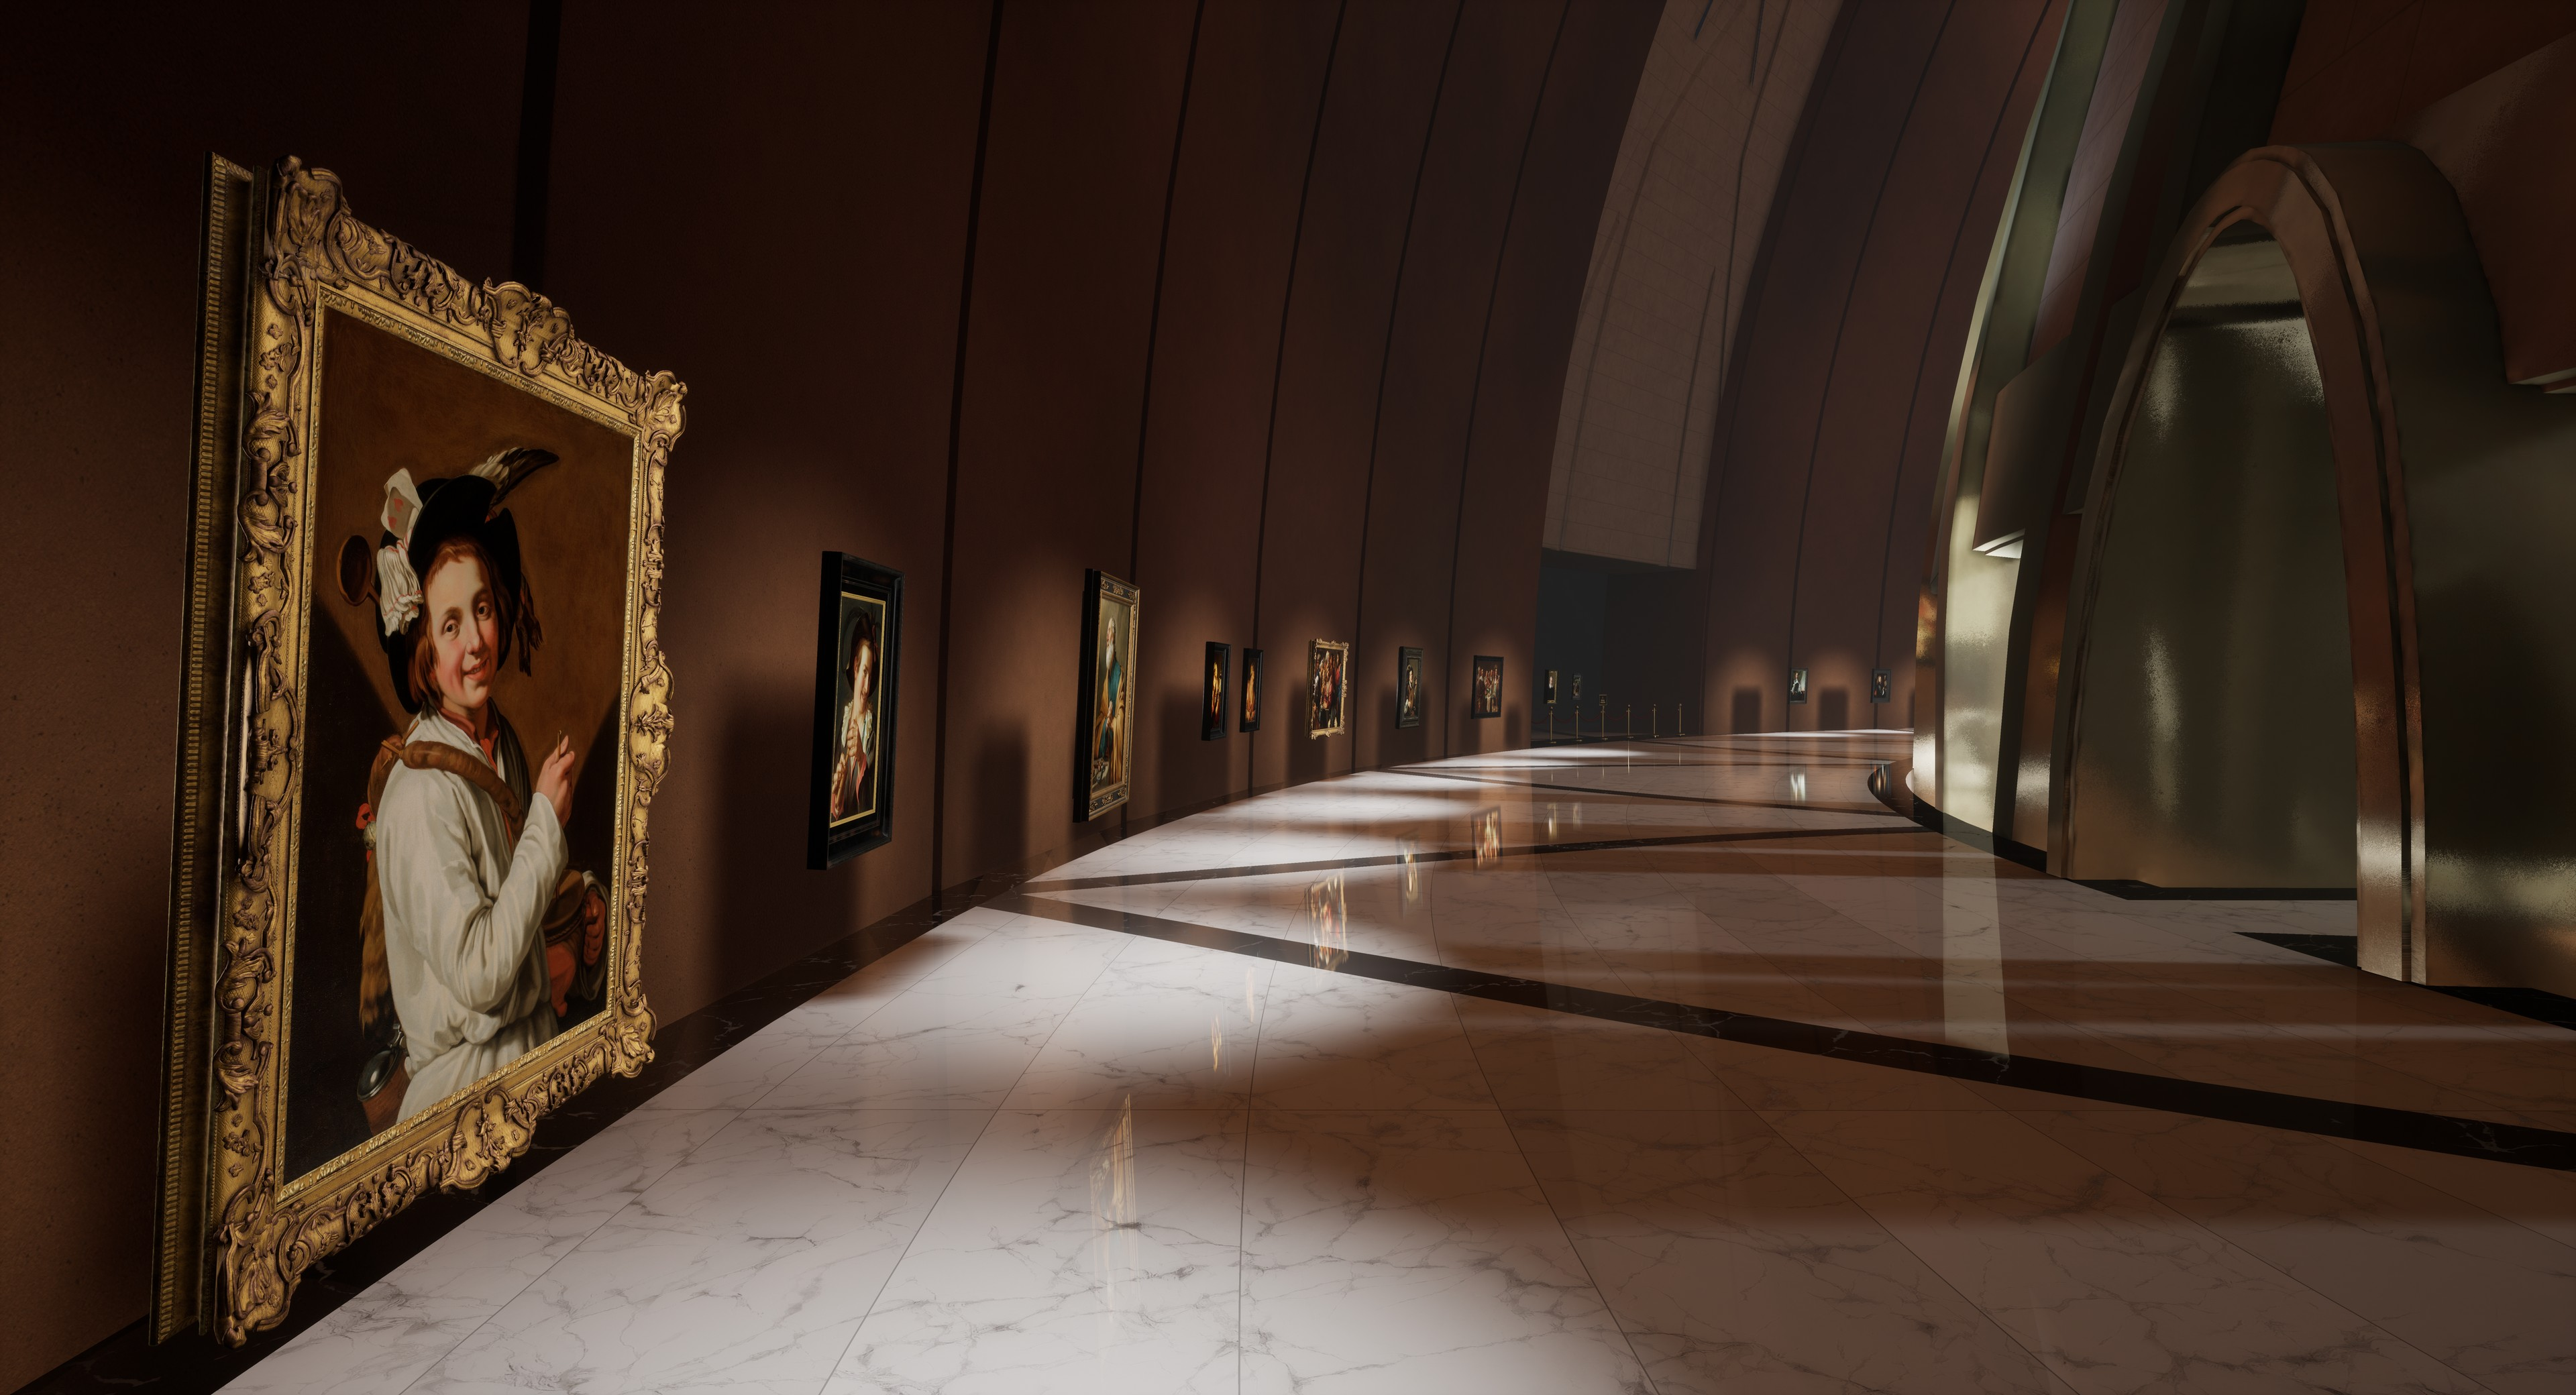 #art&technology: Visiting popular exhibitions and museums